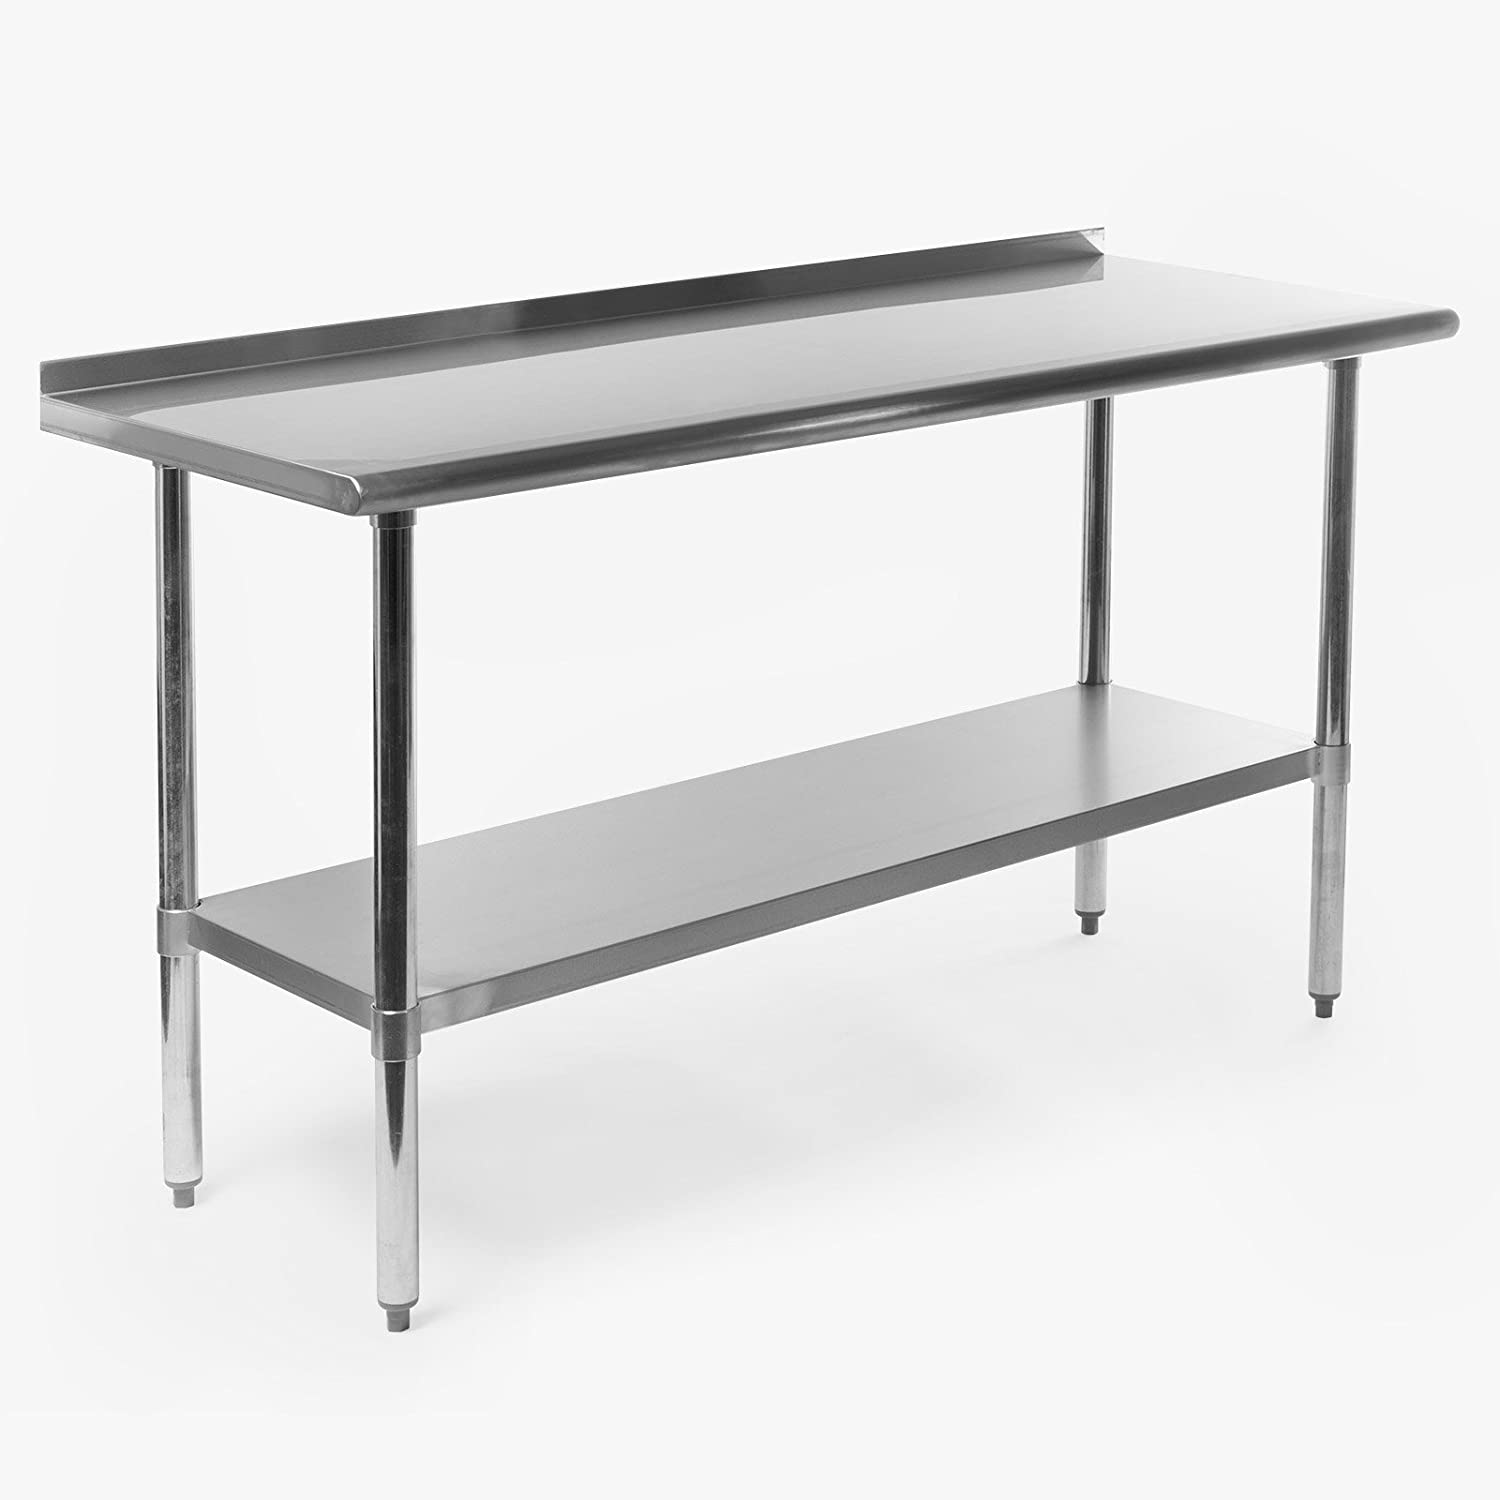 b ie UTF8&node kitchen prep tables Gridmann NSF Stainless Steel Commercial Kitchen Prep Work Table w Backsplash 60 in